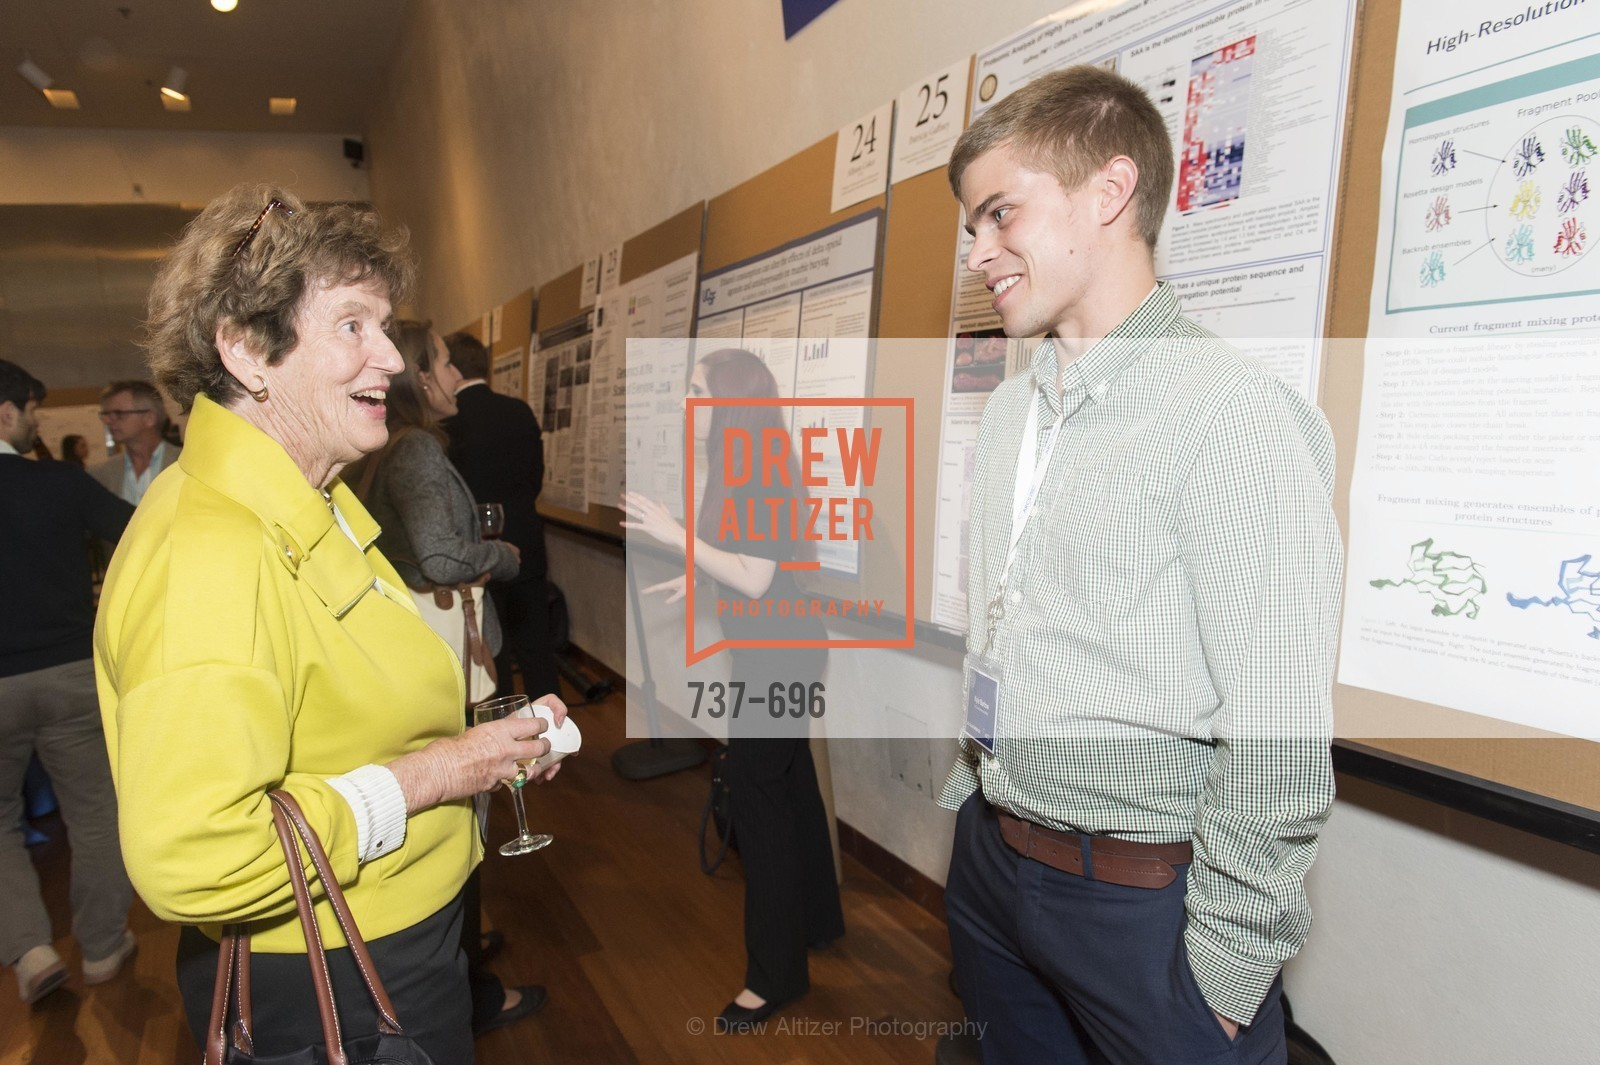 Bailey Meyer, Kyle Barlow, ARCS FOUNDATION Scholar Symposium, US, May 5th, 2015,Drew Altizer, Drew Altizer Photography, full-service agency, private events, San Francisco photographer, photographer california